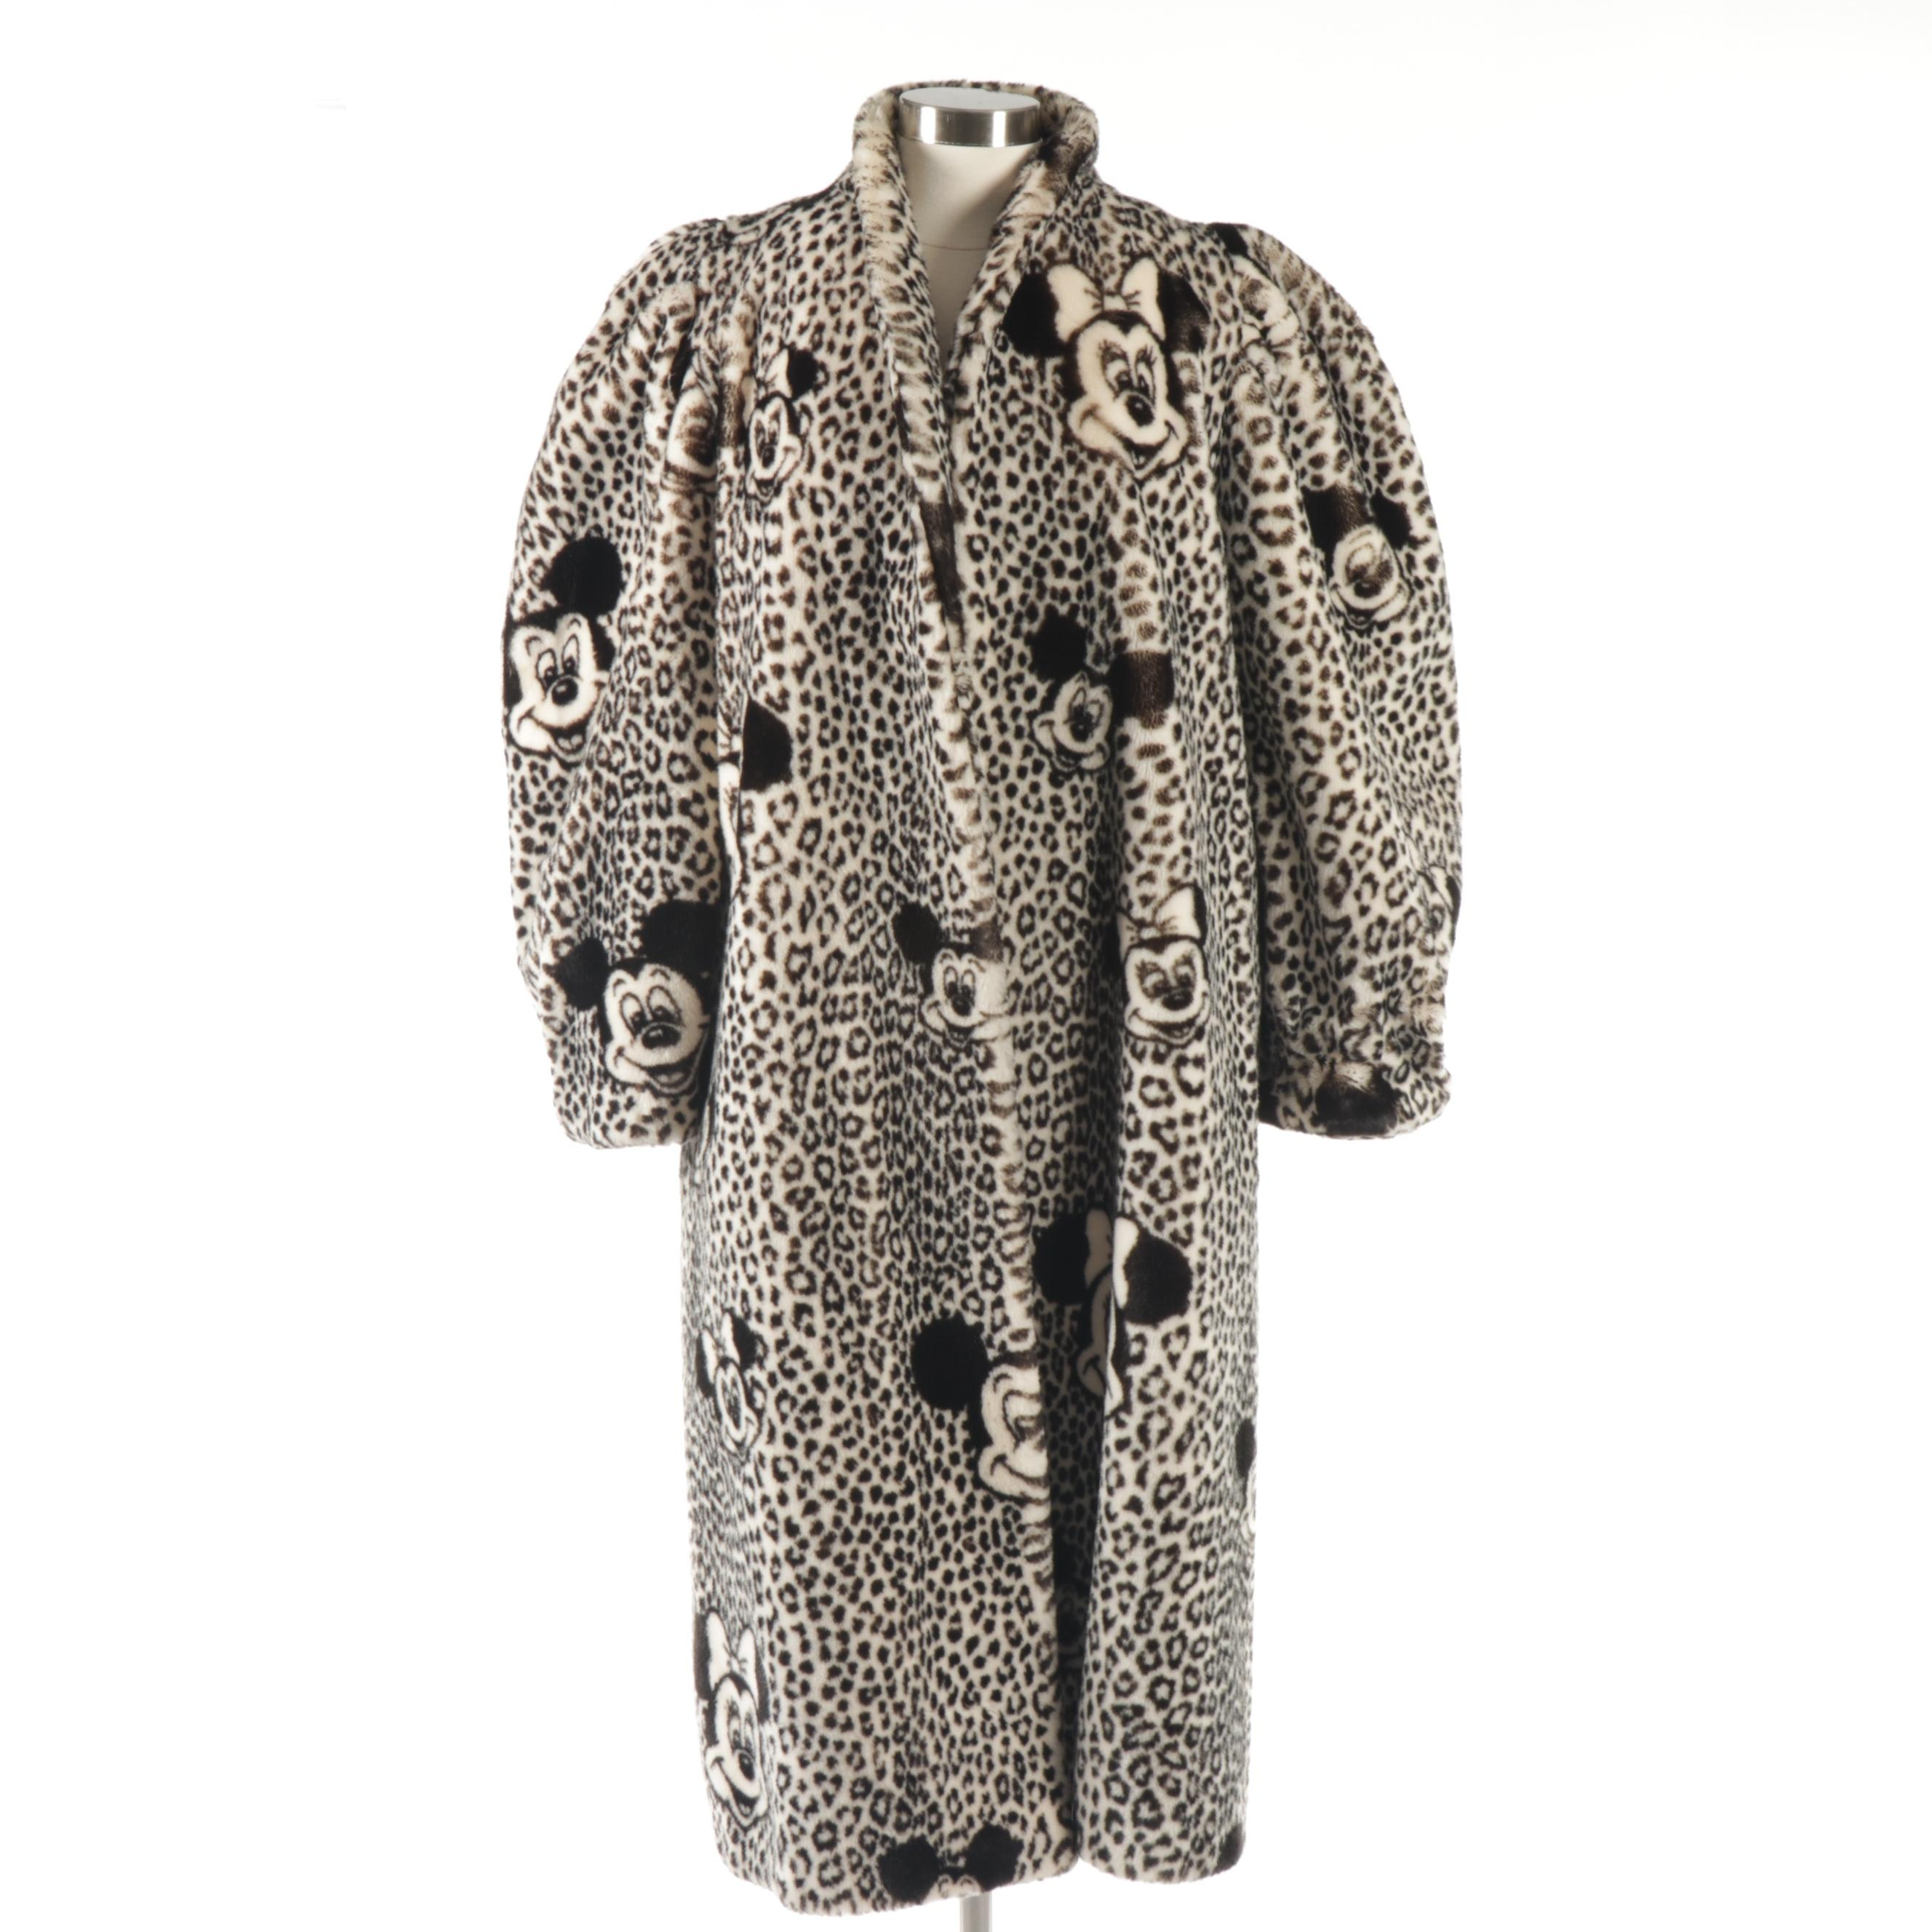 Apparence Paris Mickey and Minnie Leopard Print Faux Fur Coat